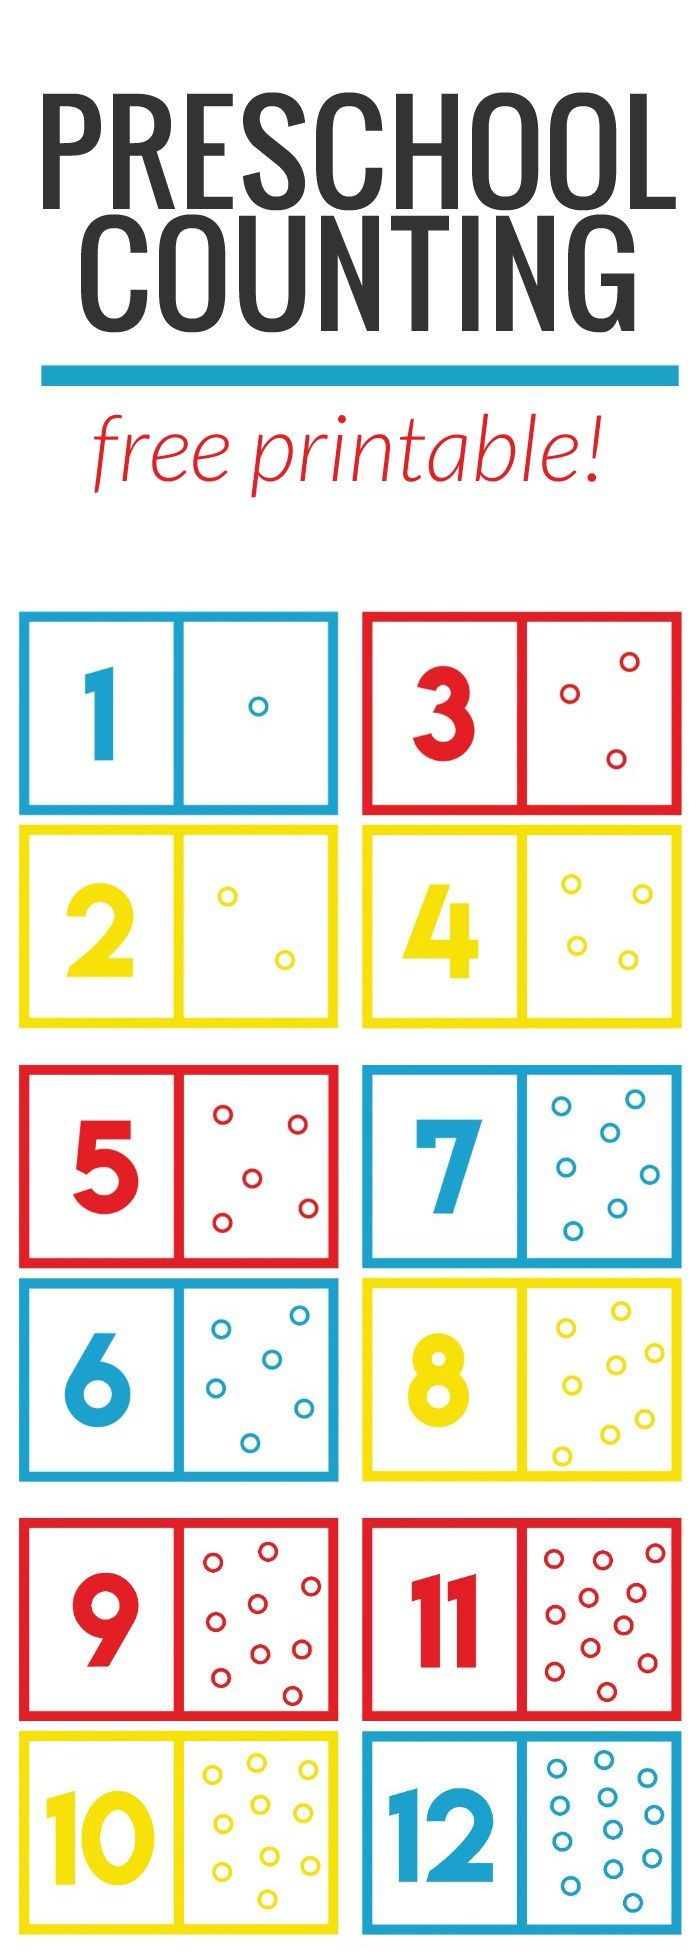 Preschool Math Counting Game + Free Printable